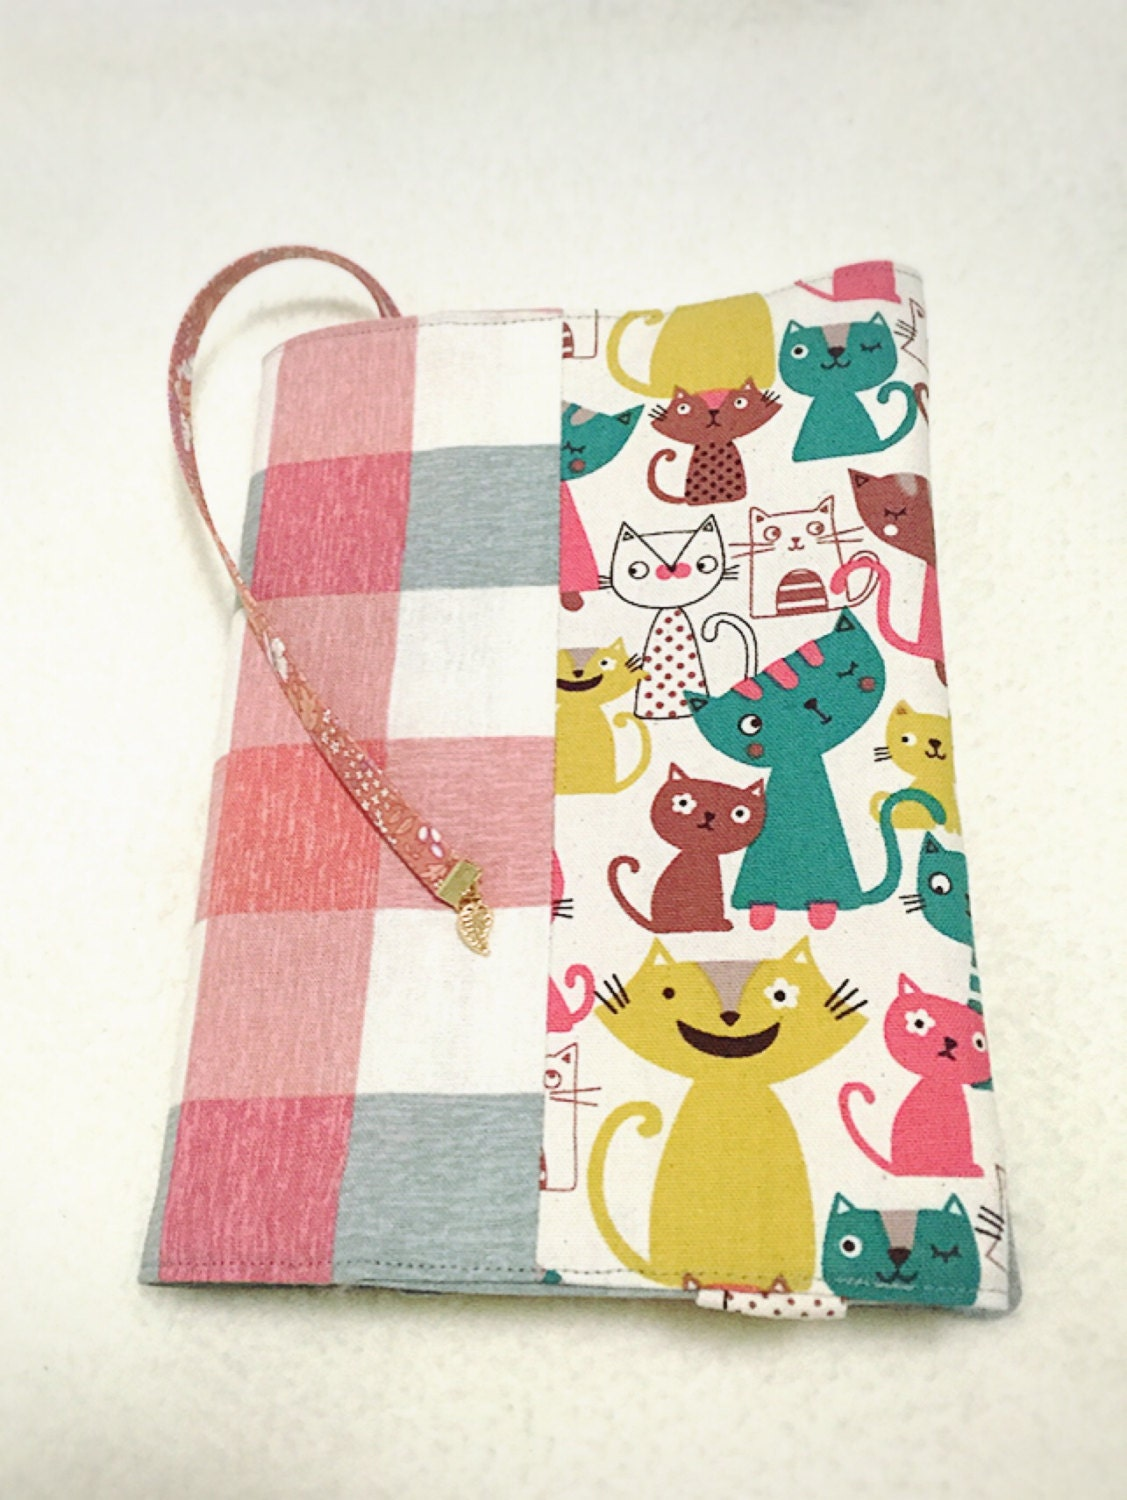 Make Adjustable Fabric Book Cover : Adjustable fabric bookcover with cats in pink and gray